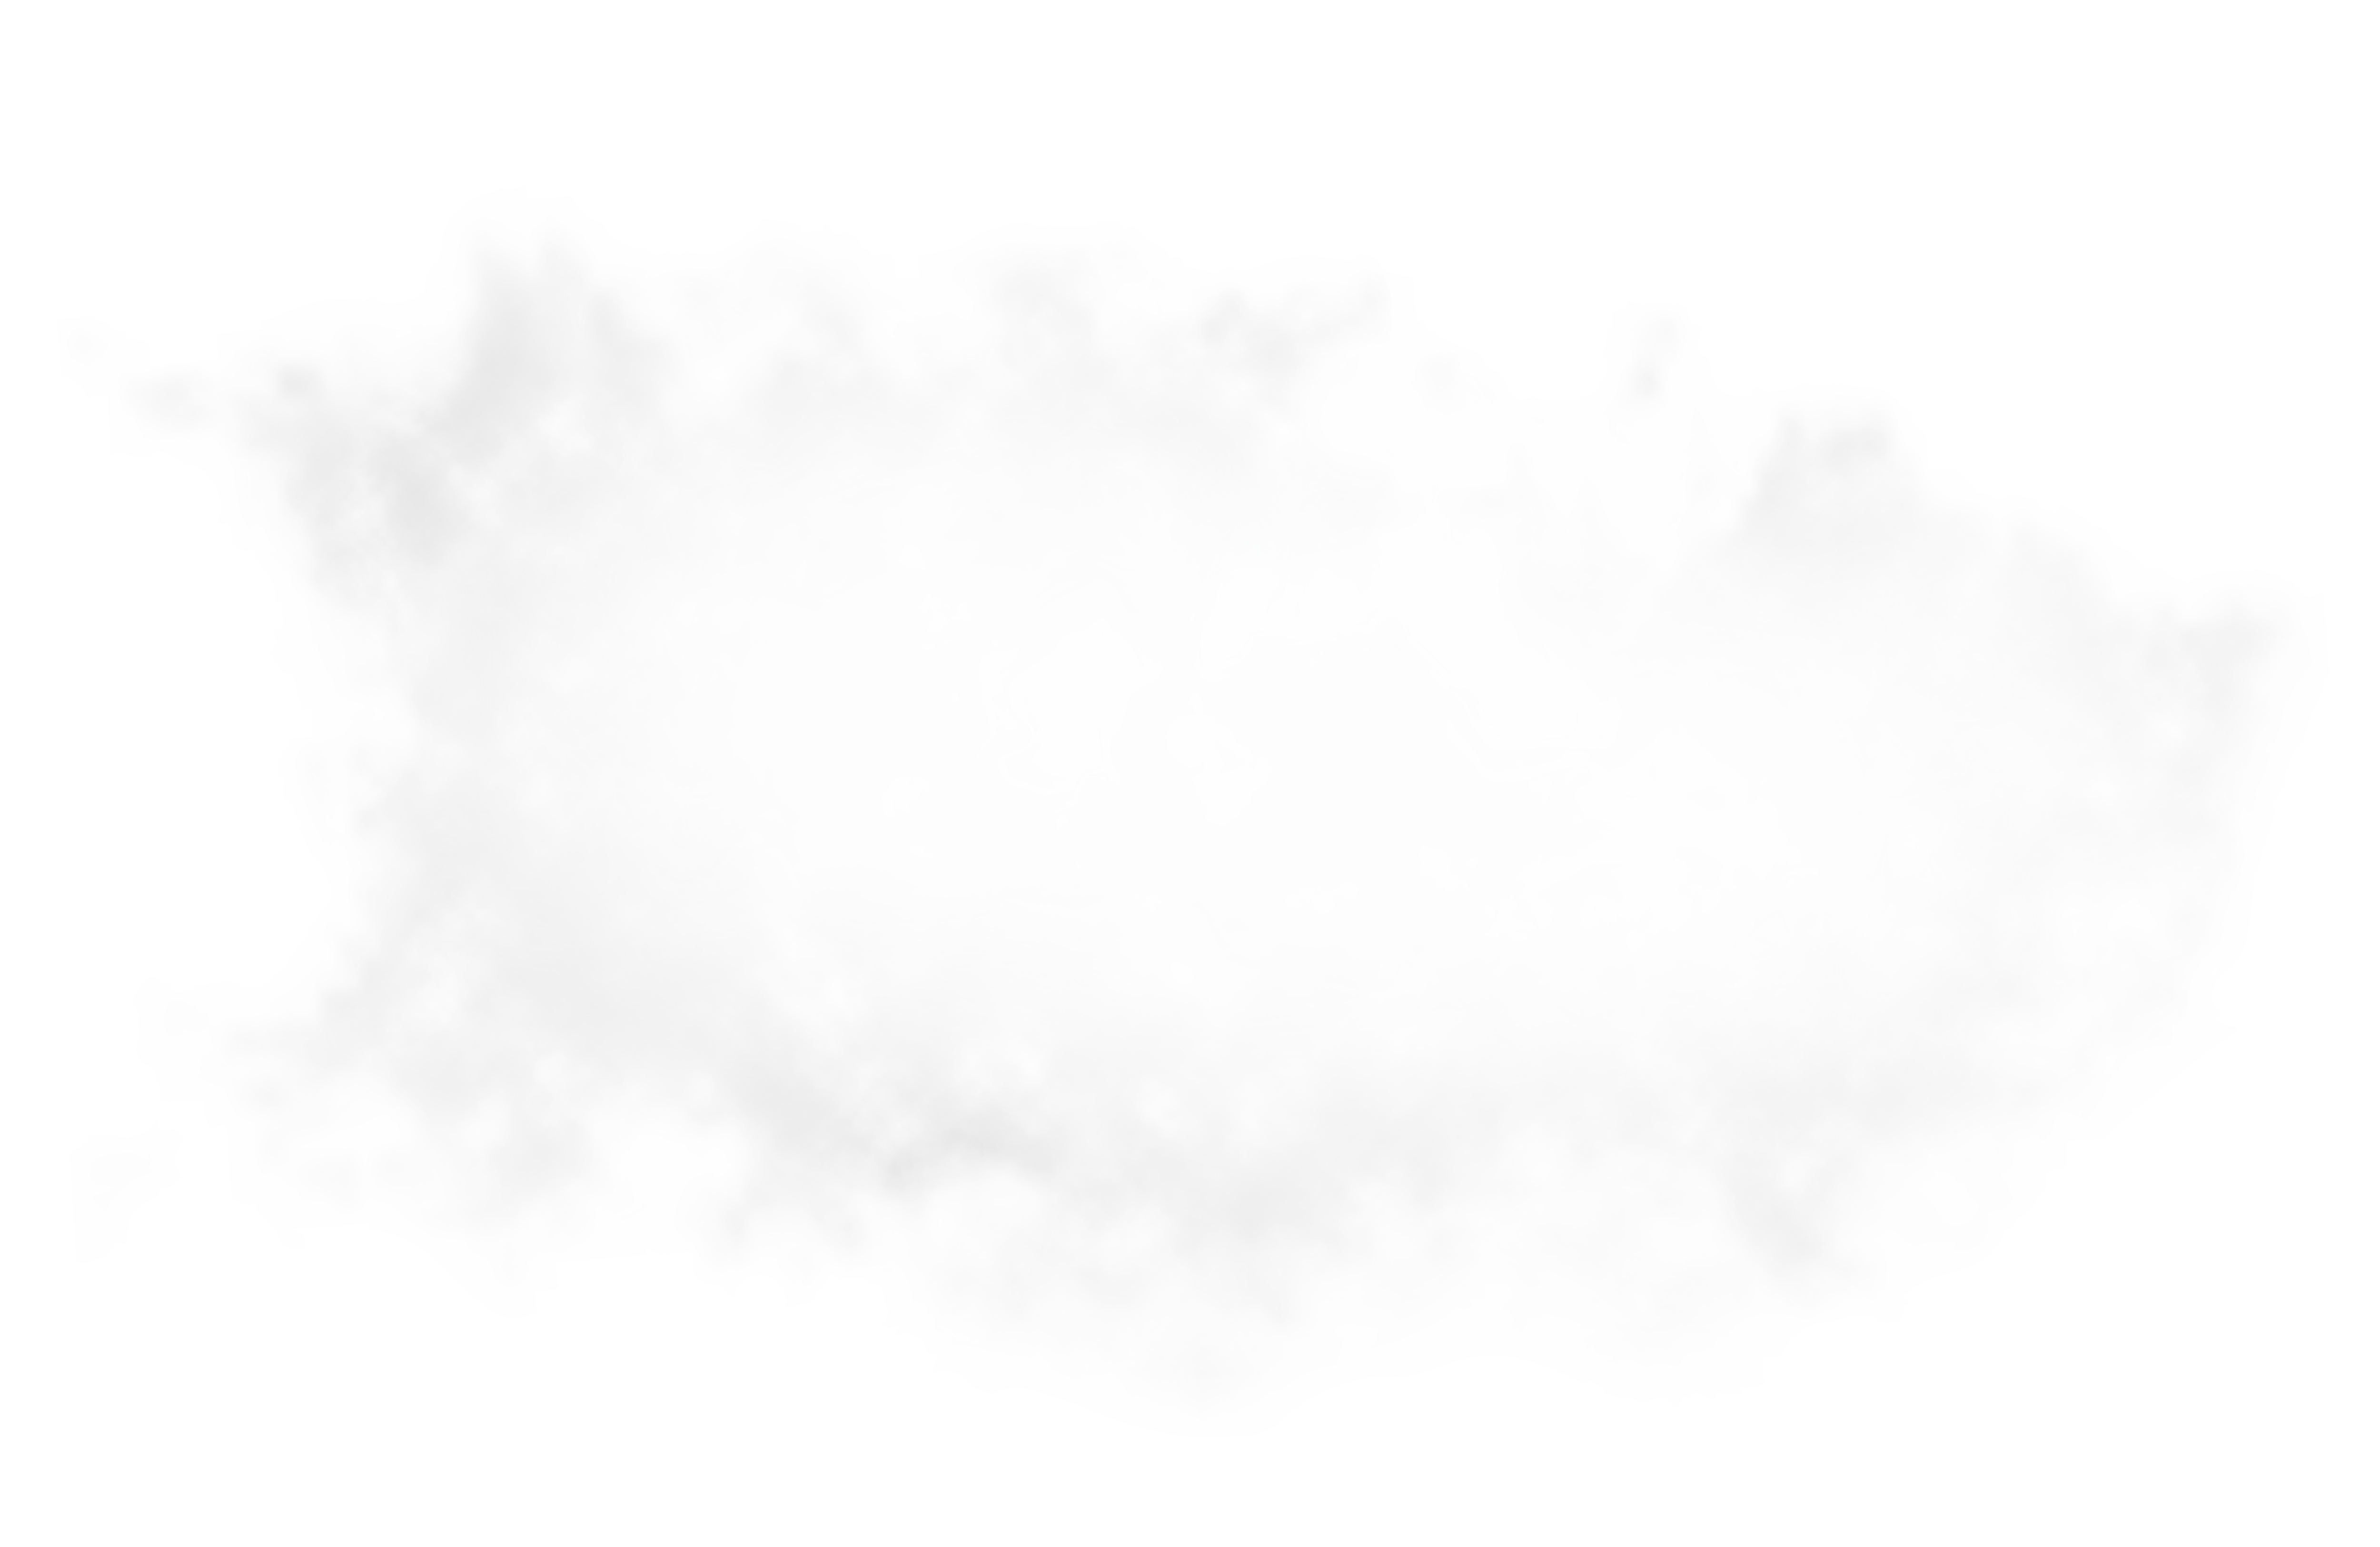 White Cloud Transparent Picture